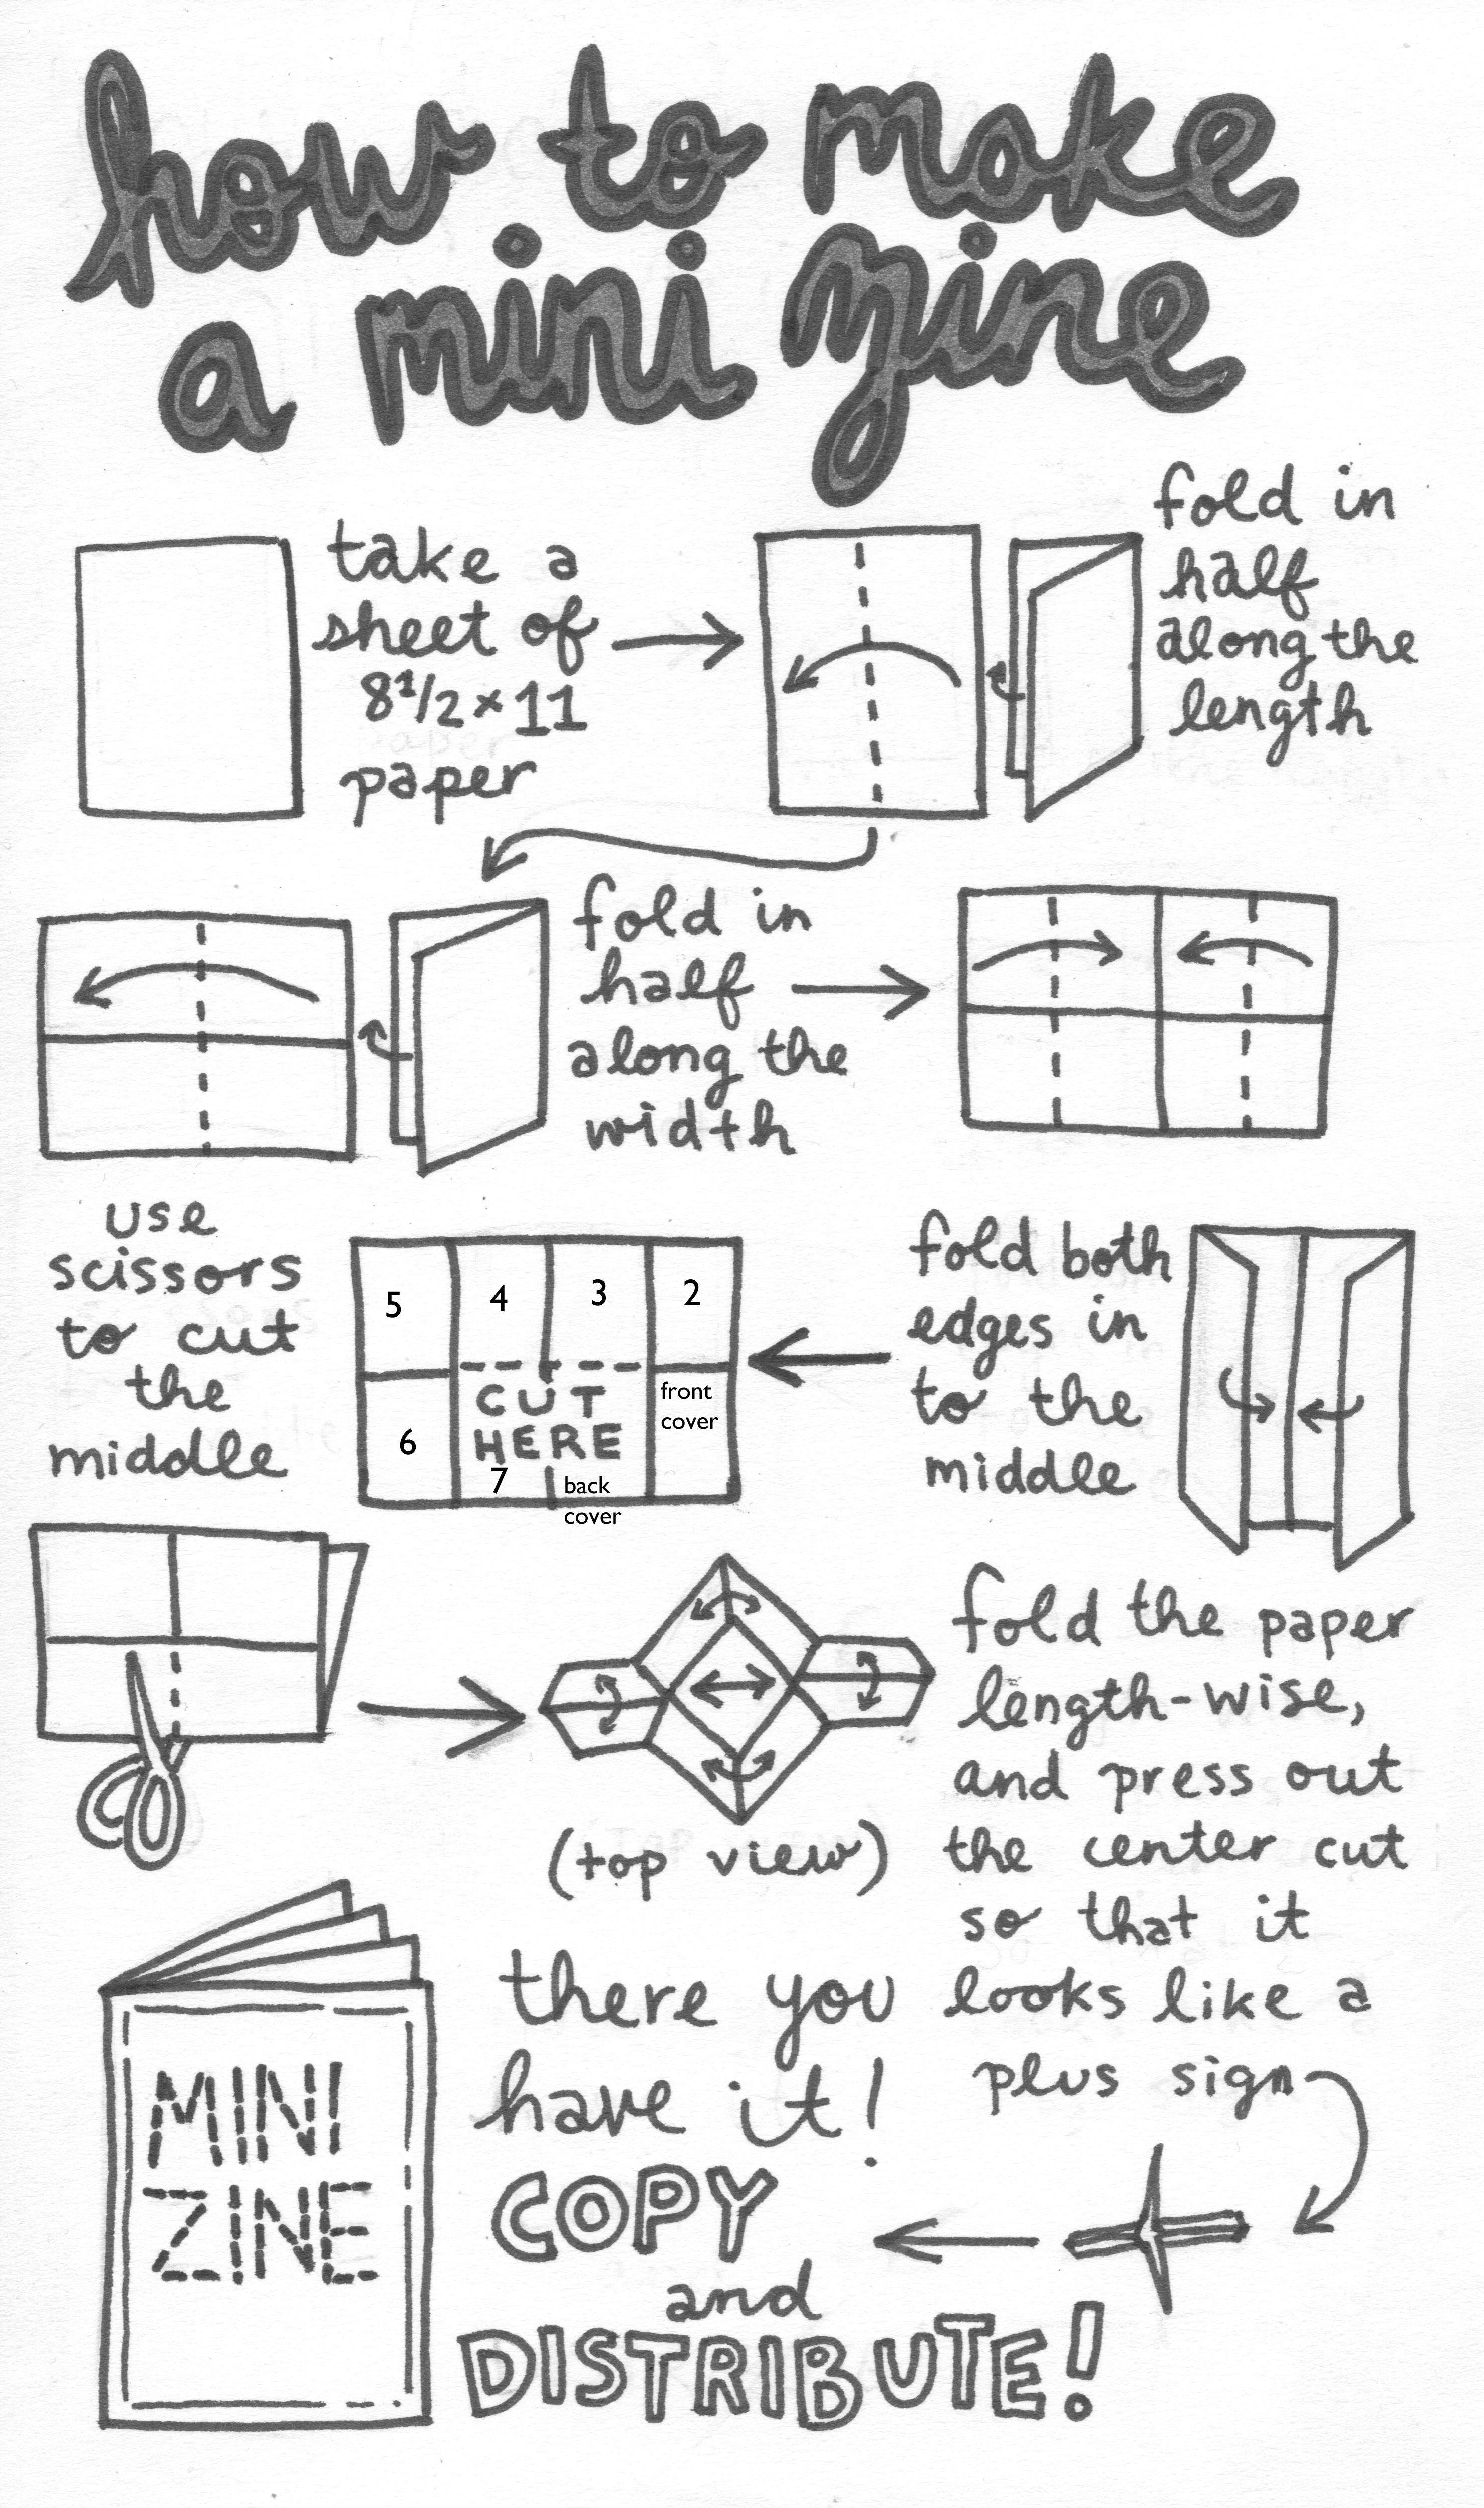 How To Make A Mini Zine by Sassyfrass Circus. On May 11th